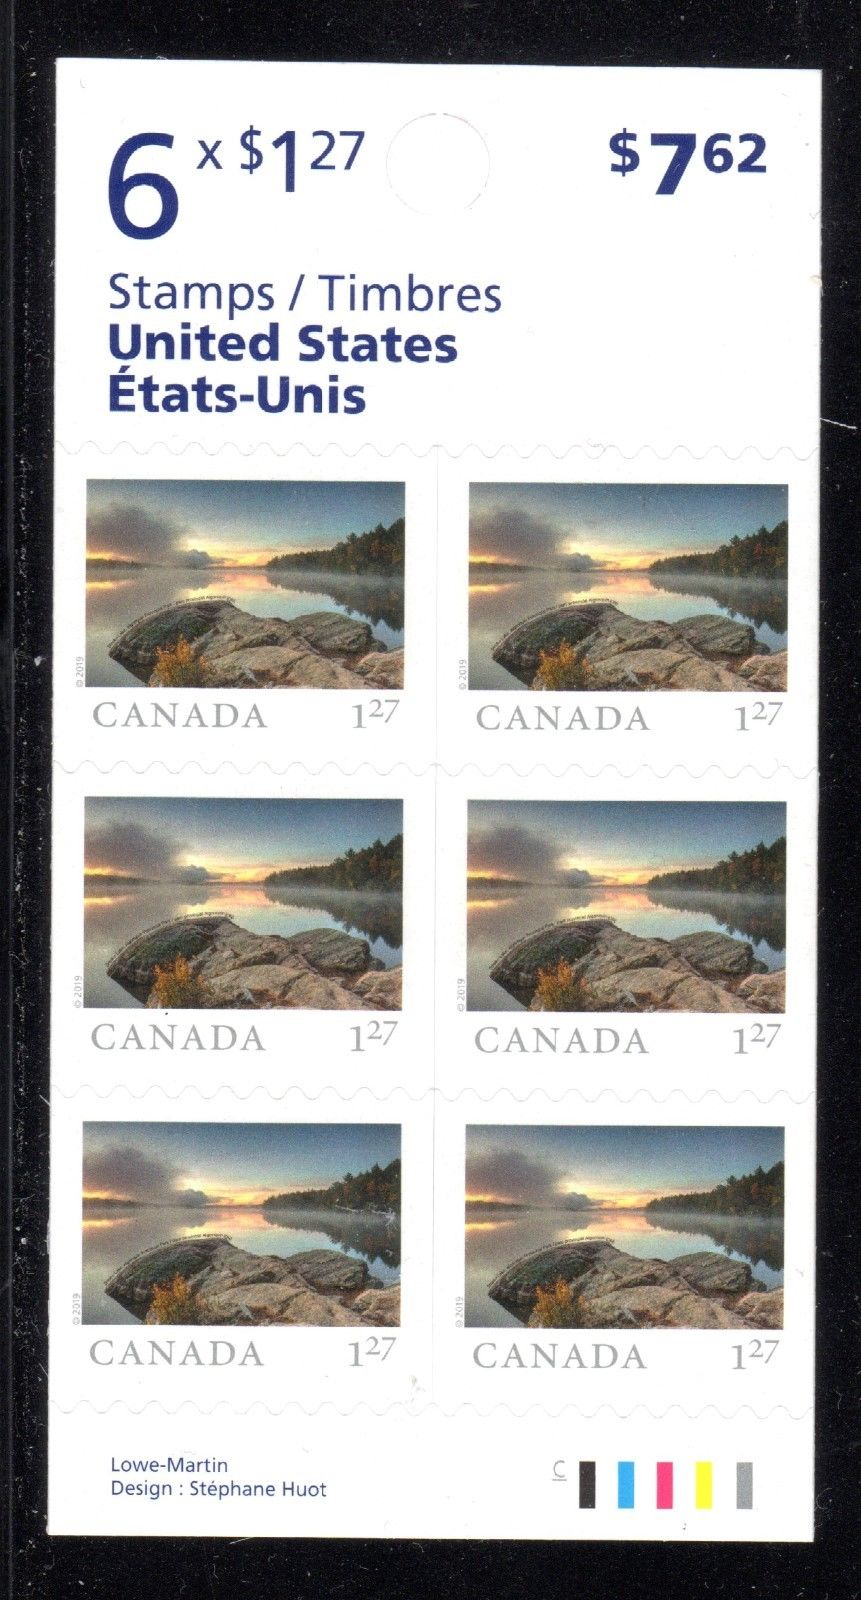 Canada - From Far and Wide (January 14, 2019) U.S. rate booklet of 6